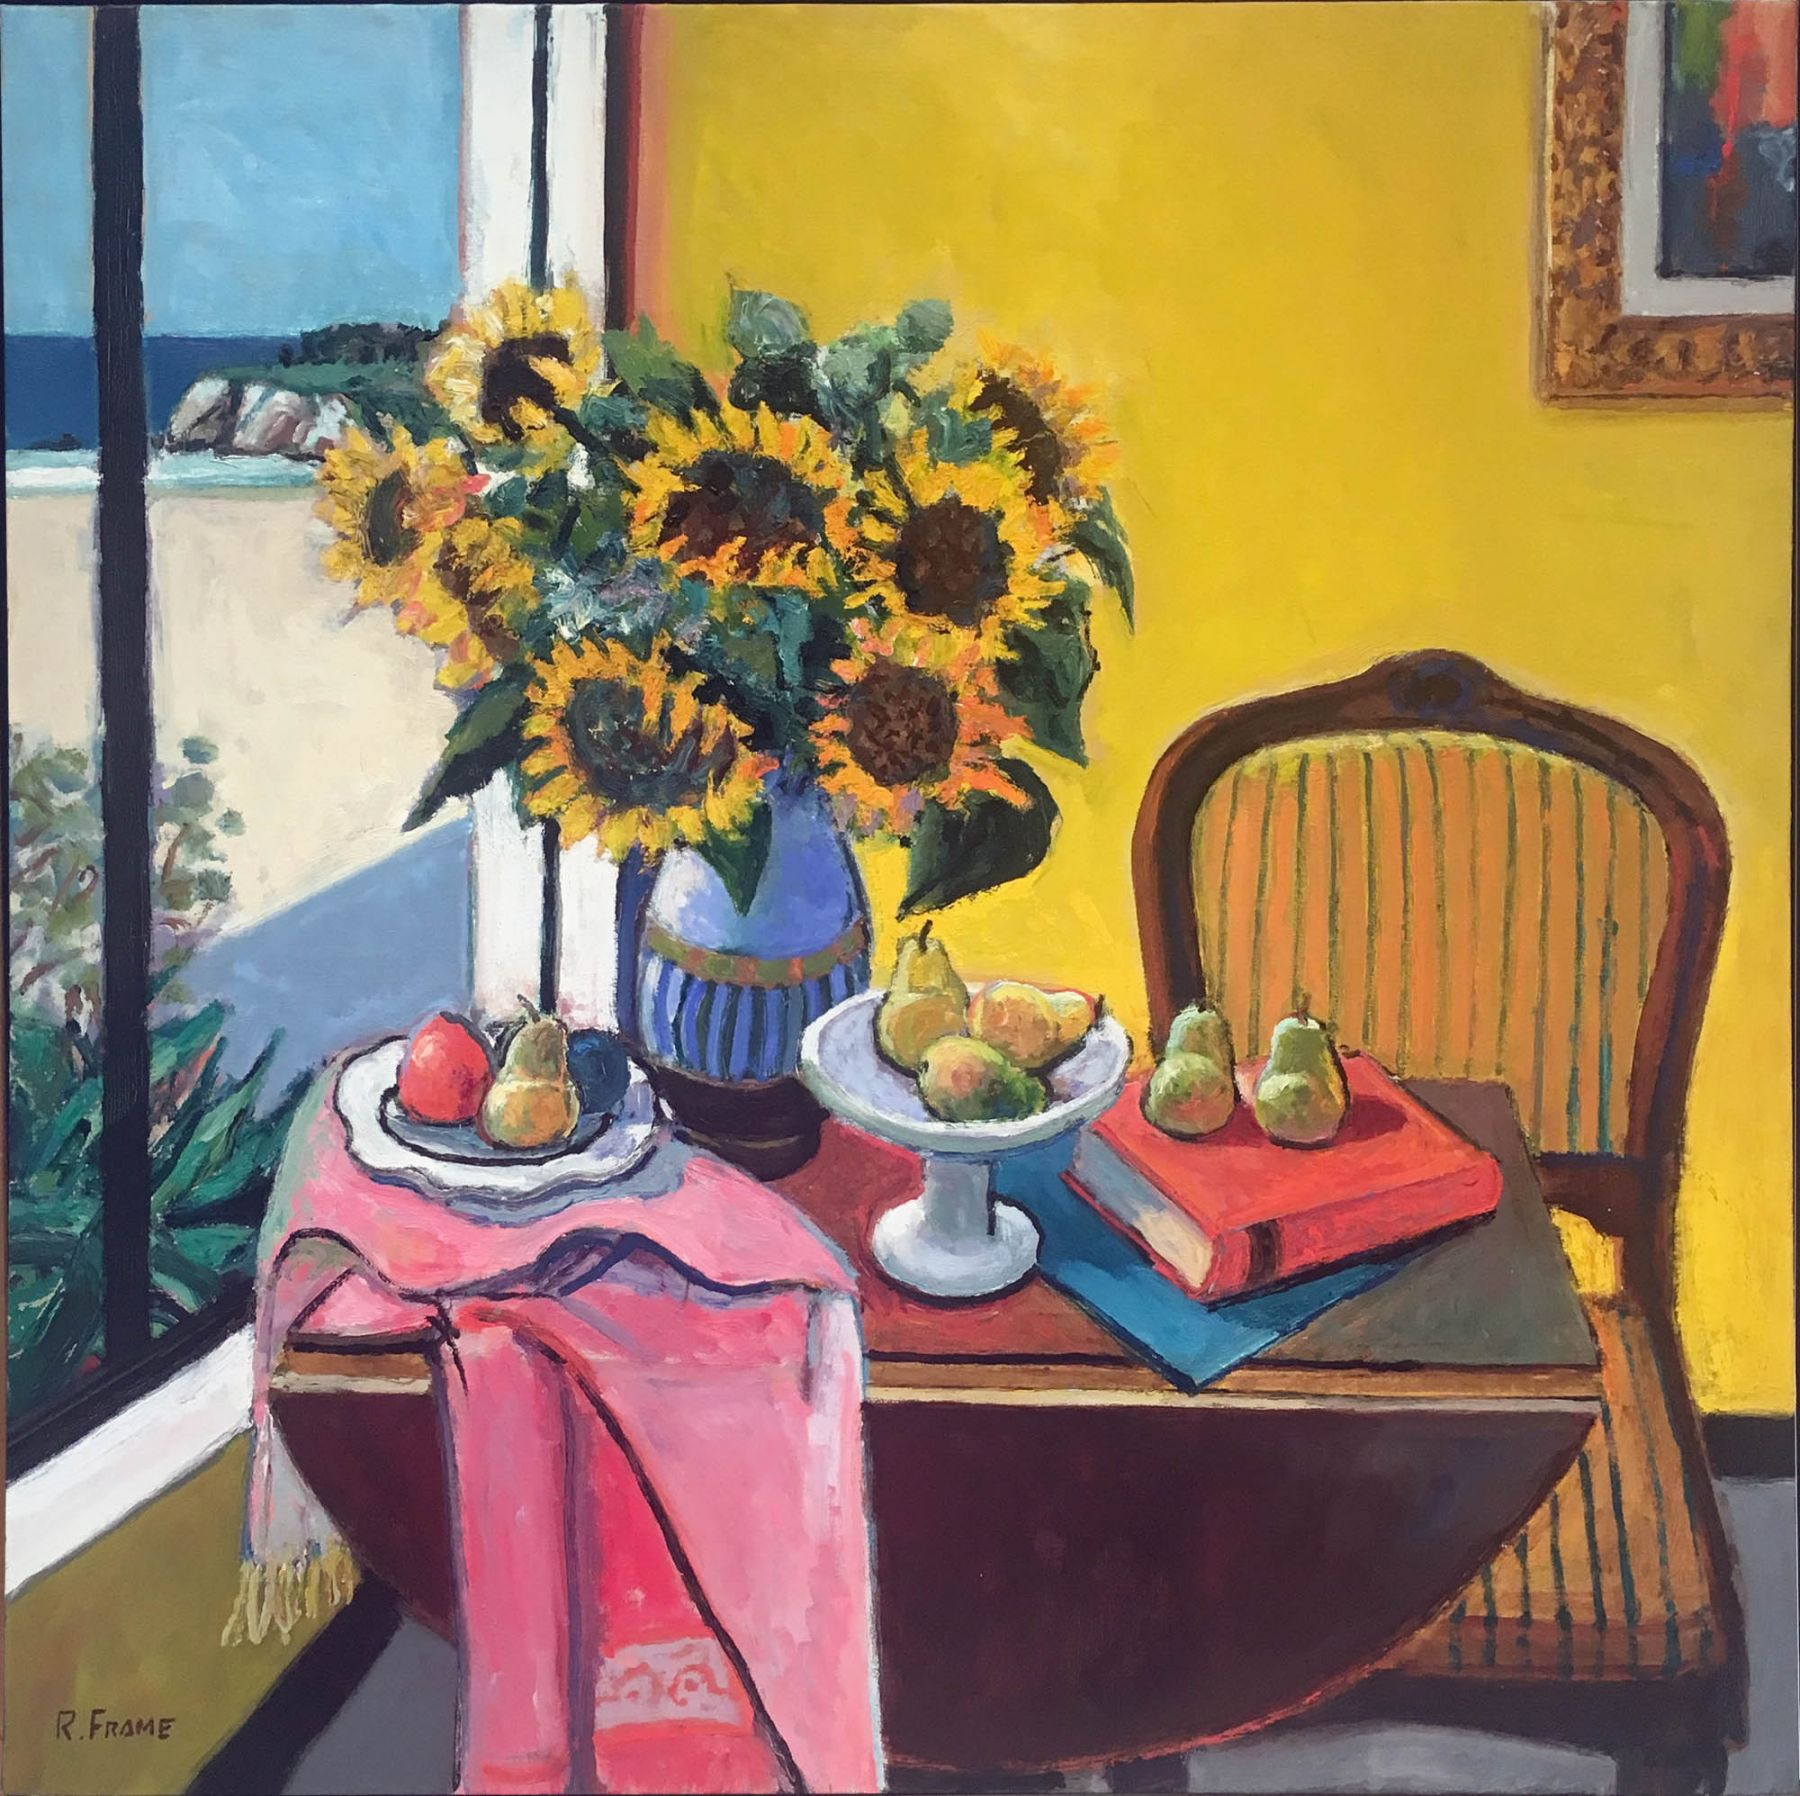 Robert Frame, Sunflowers in a Yellow Room, c.1975